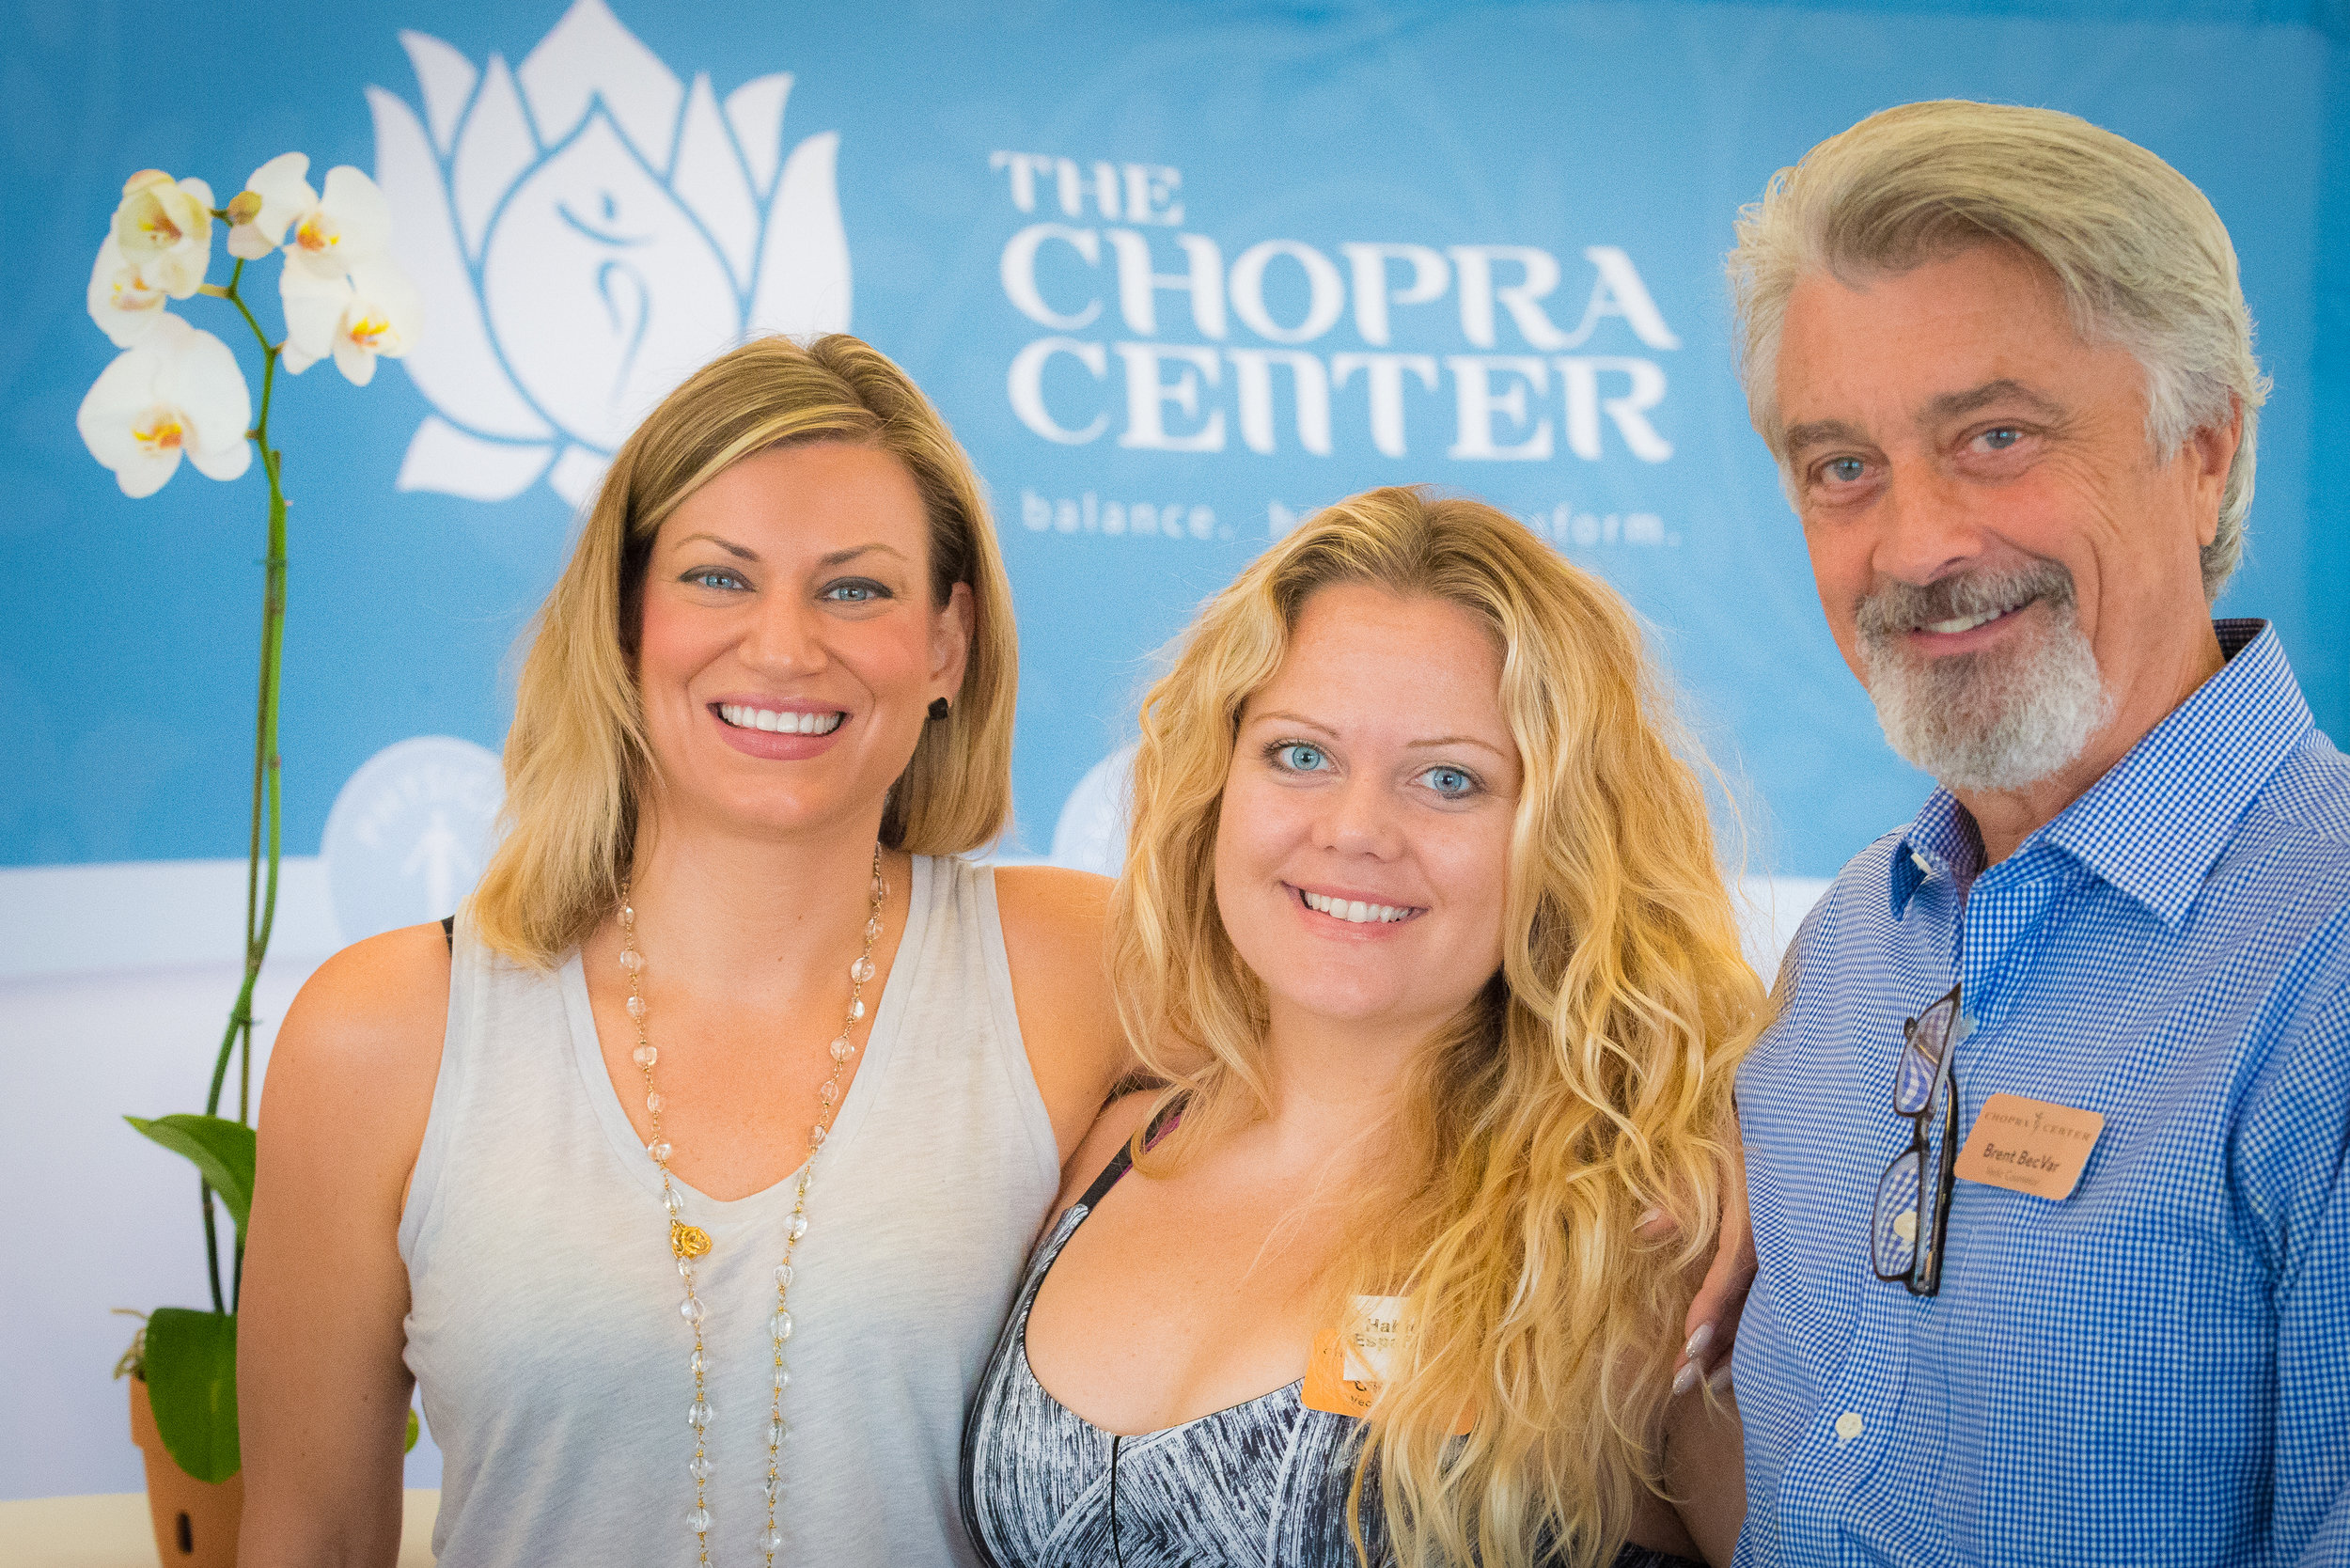 The Chopra center staff, chopra center for wellbeing, carlsbad, Ca